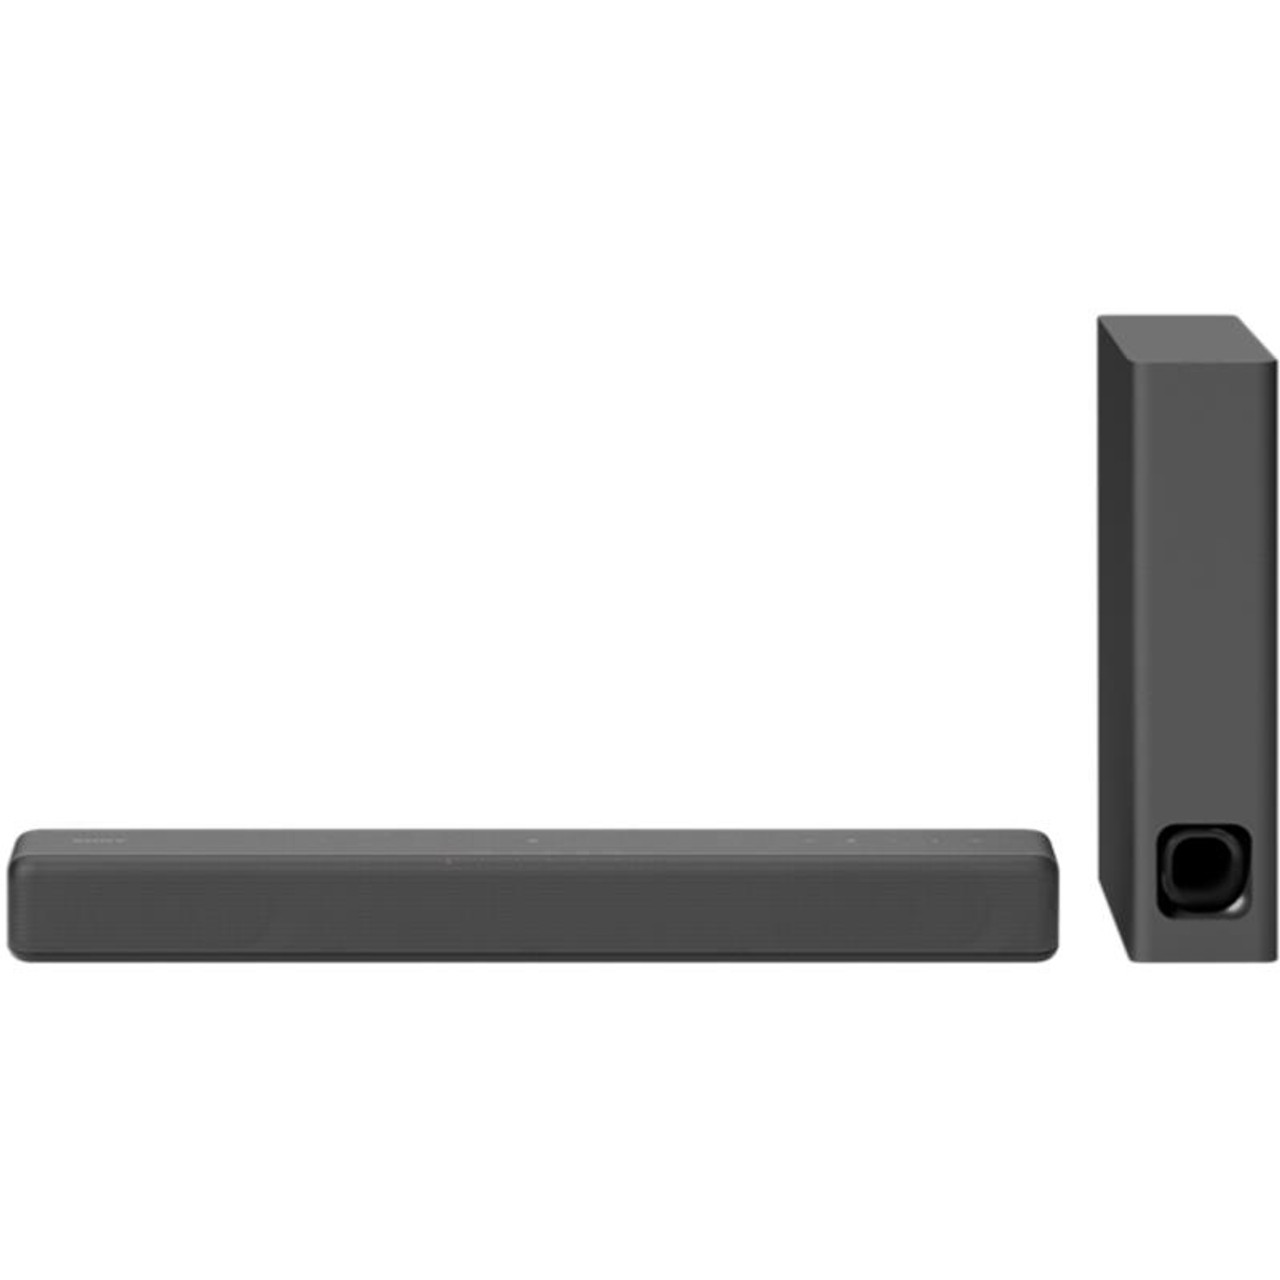 Sony HT-MT300 2.1ch Compact Bluetooth Soundbar with Wireless Subwoofer